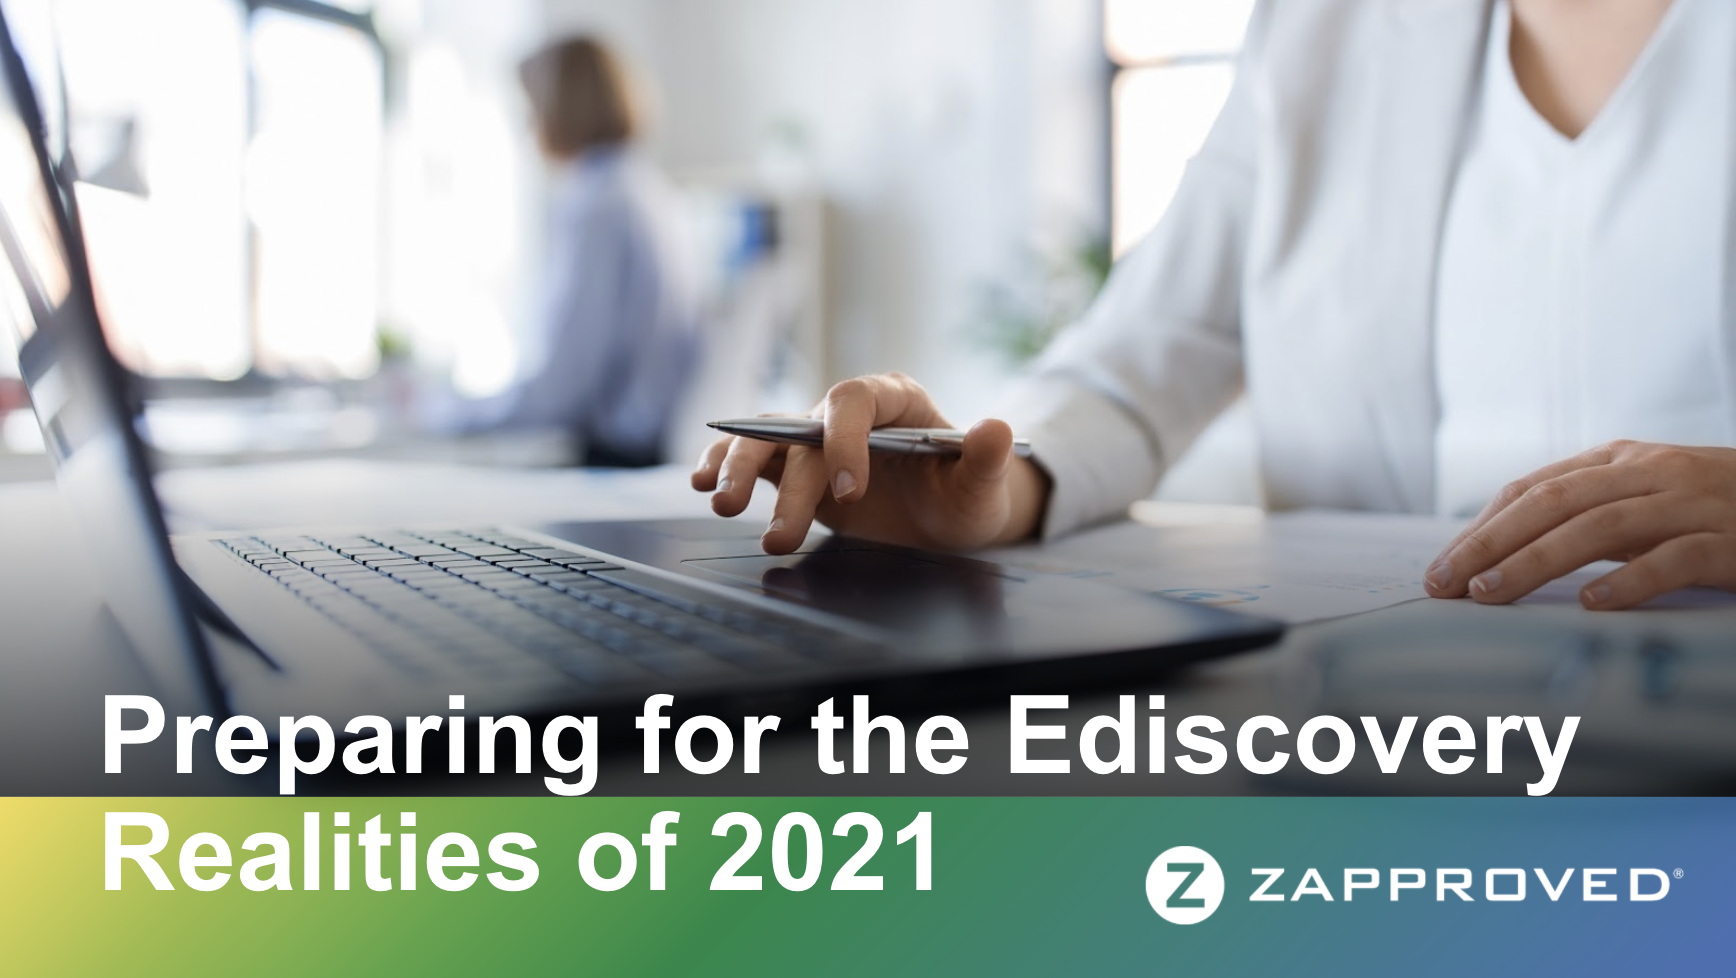 ODW-Ediscovery Realities of 2021